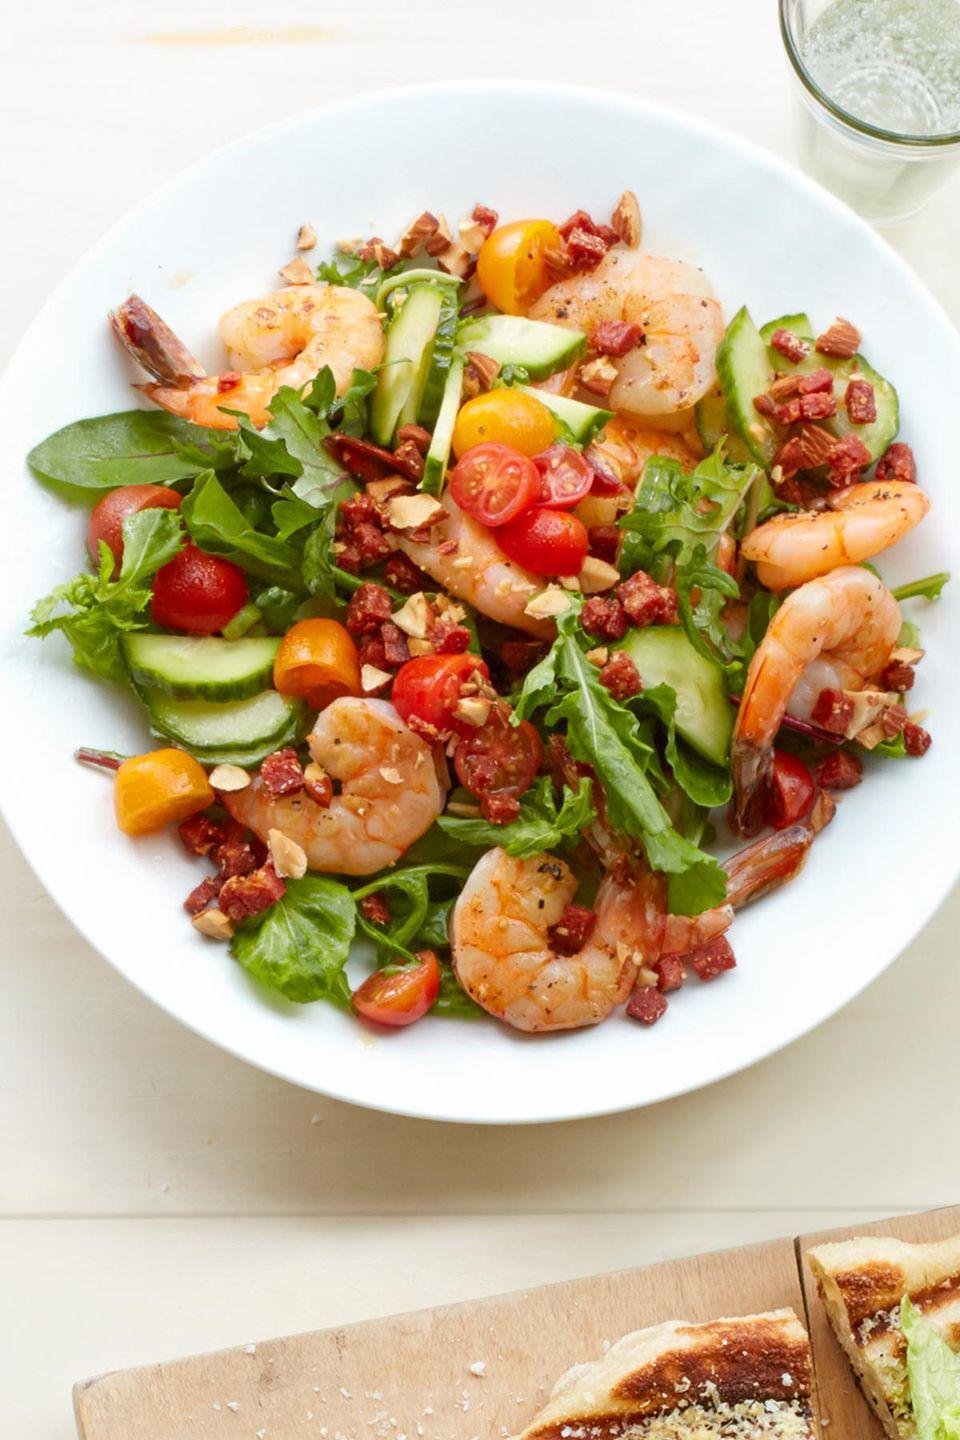 "<p>Crispy bits of chorizo beat out croutons any day.</p><p><a href=""https://www.womansday.com/food-recipes/food-drinks/recipes/a54826/shrimp-salad-with-crispy-chorizo-and-almonds-recipe/"" rel=""nofollow noopener"" target=""_blank"" data-ylk=""slk:Get the recipe for Shrimp Salad with Crispy Chorizo and Almonds."" class=""link rapid-noclick-resp""><em>Get the recipe for Shrimp Salad with Crispy Chorizo and Almonds.</em></a> </p>"